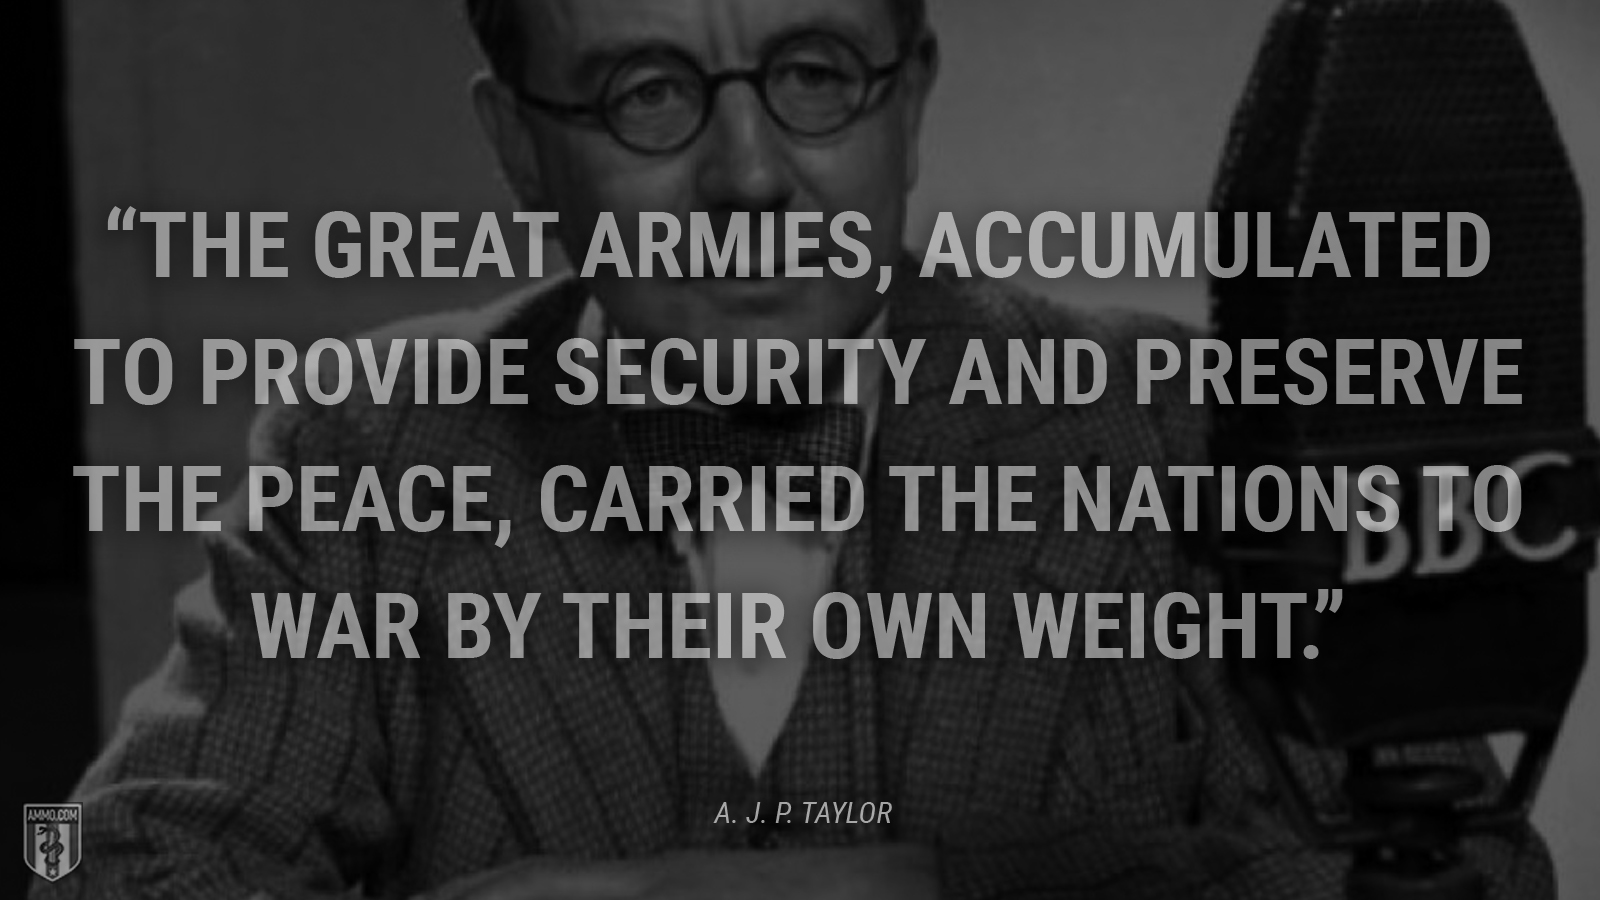 """The great armies, accumulated to provide security and preserve the peace, carried the nations to war by their own weight."" - A. J. P. Taylor"